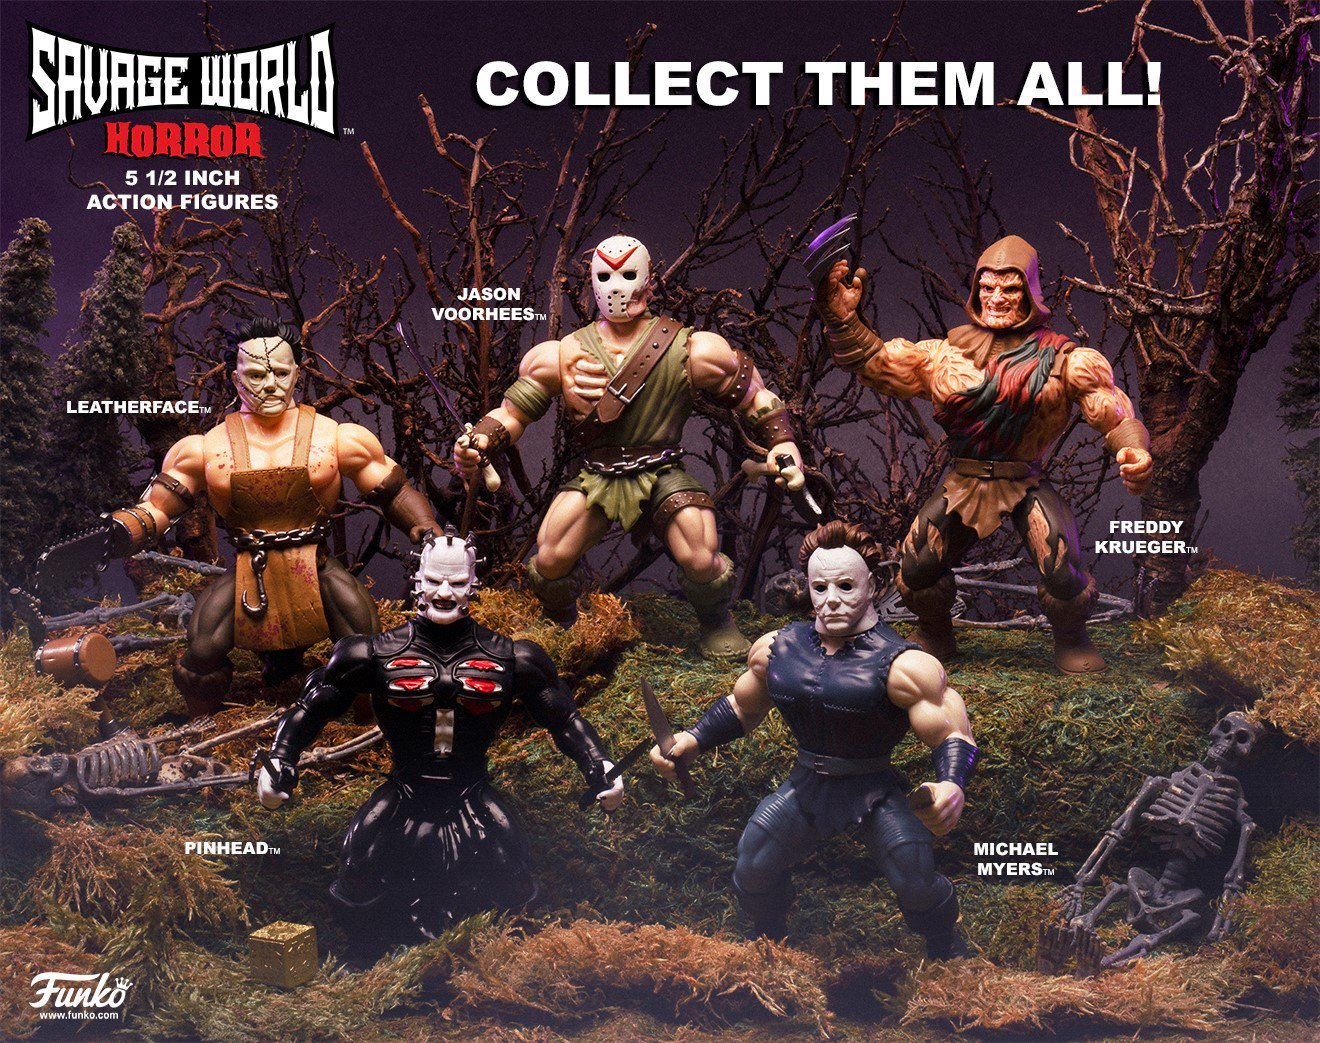 Funko's Savage World Horror Figures Available To Pre-Order